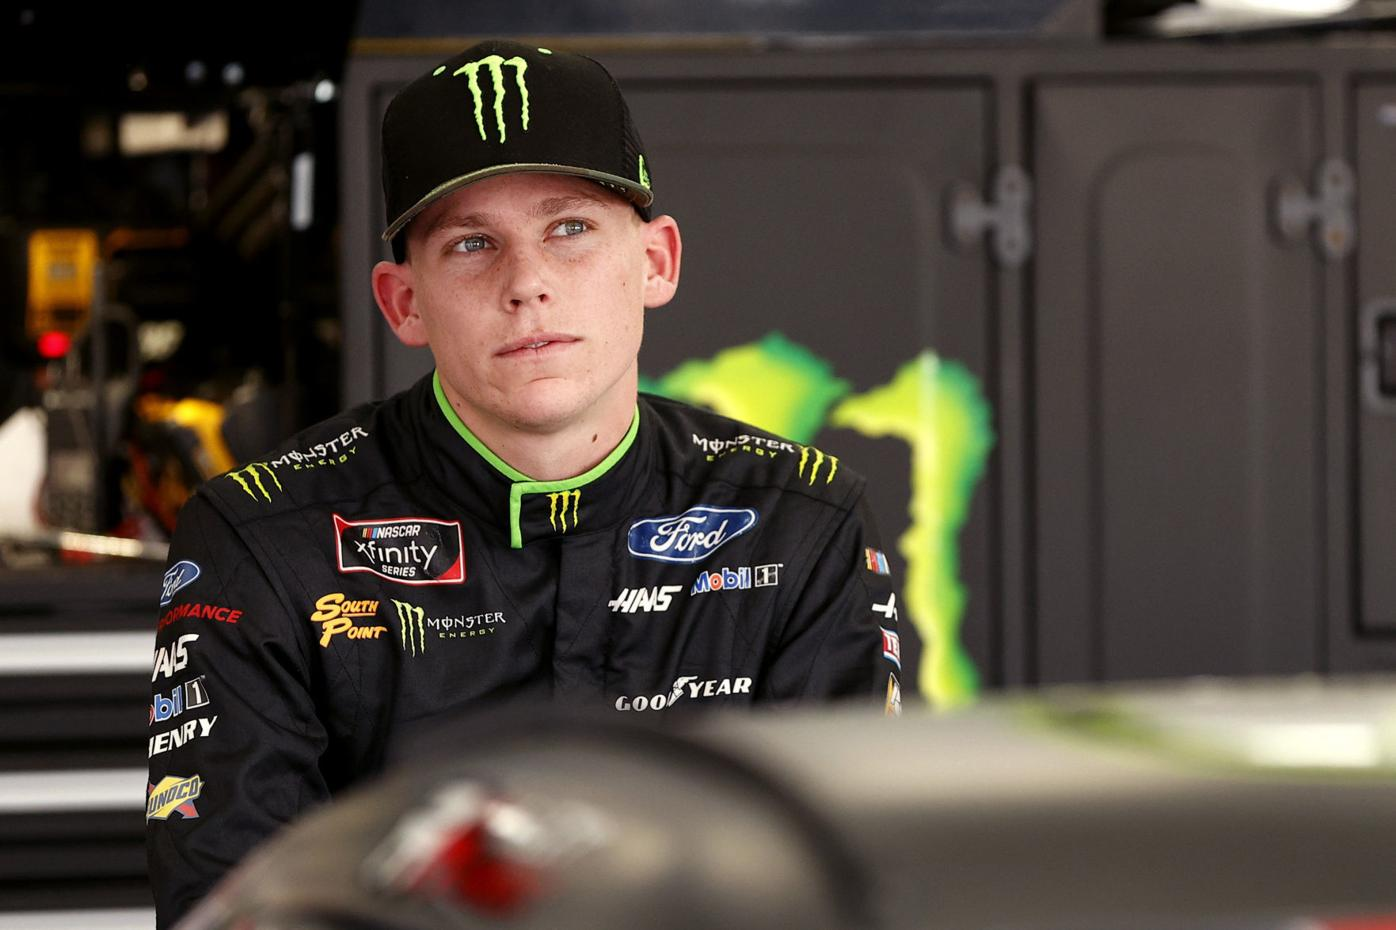 NASCAR XFINITY: Herbst hoping for more success at Pocono